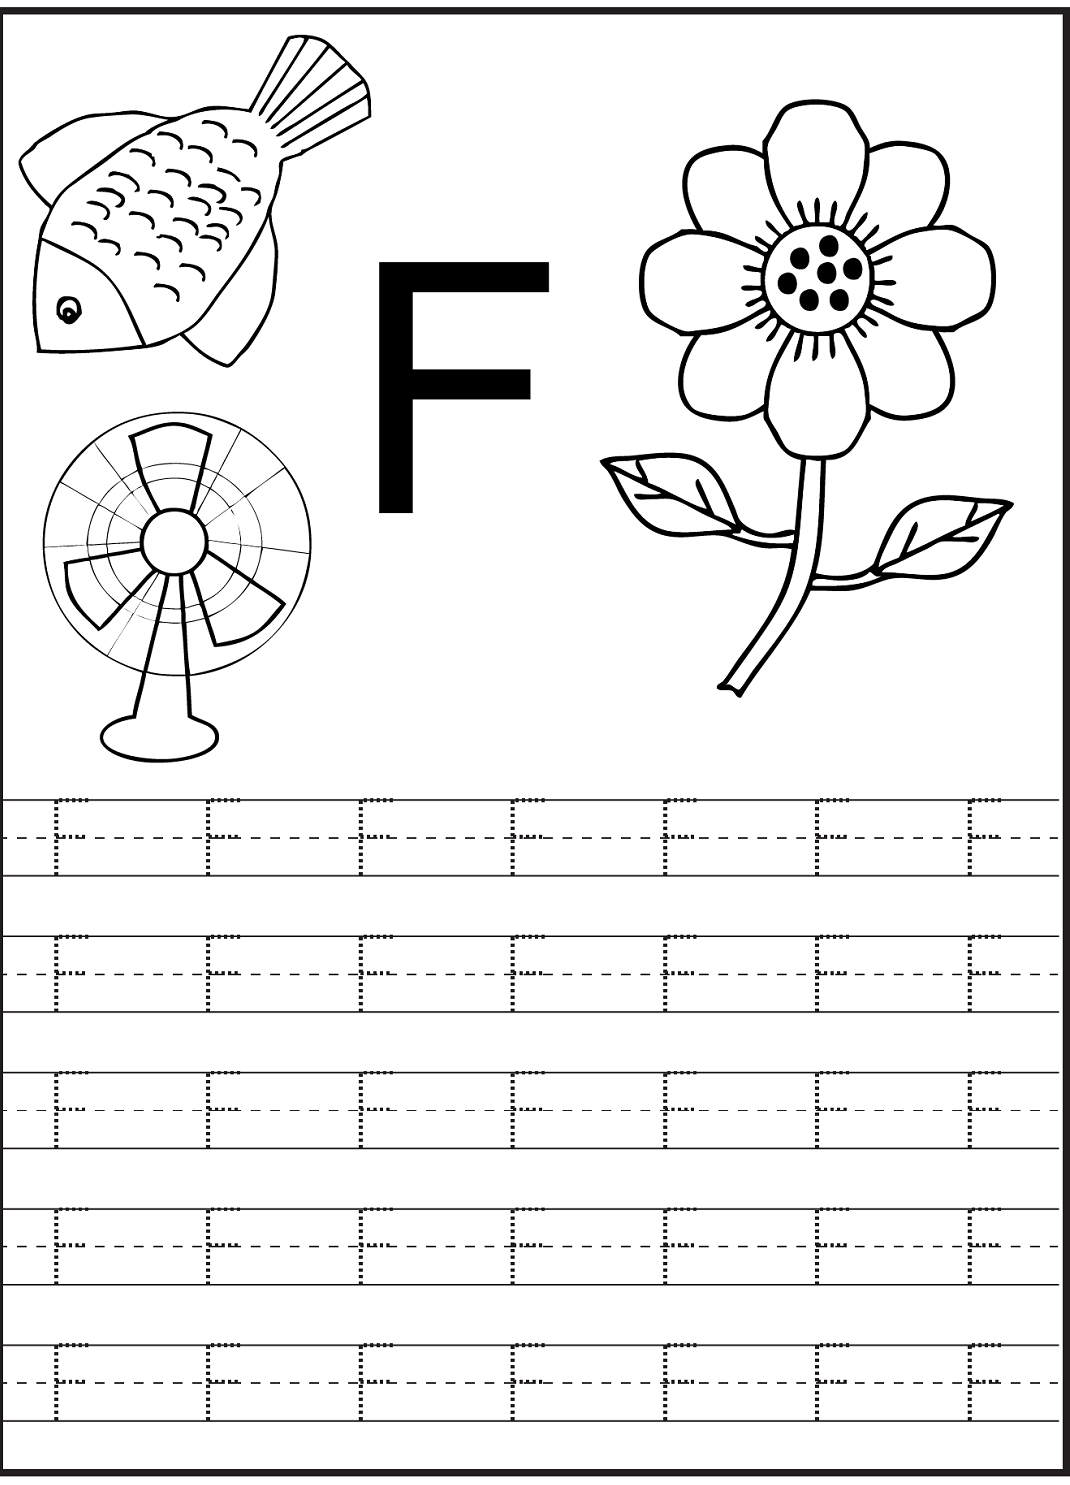 Letter F Worksheet for Preschool and Kindergarten | Matematik ...